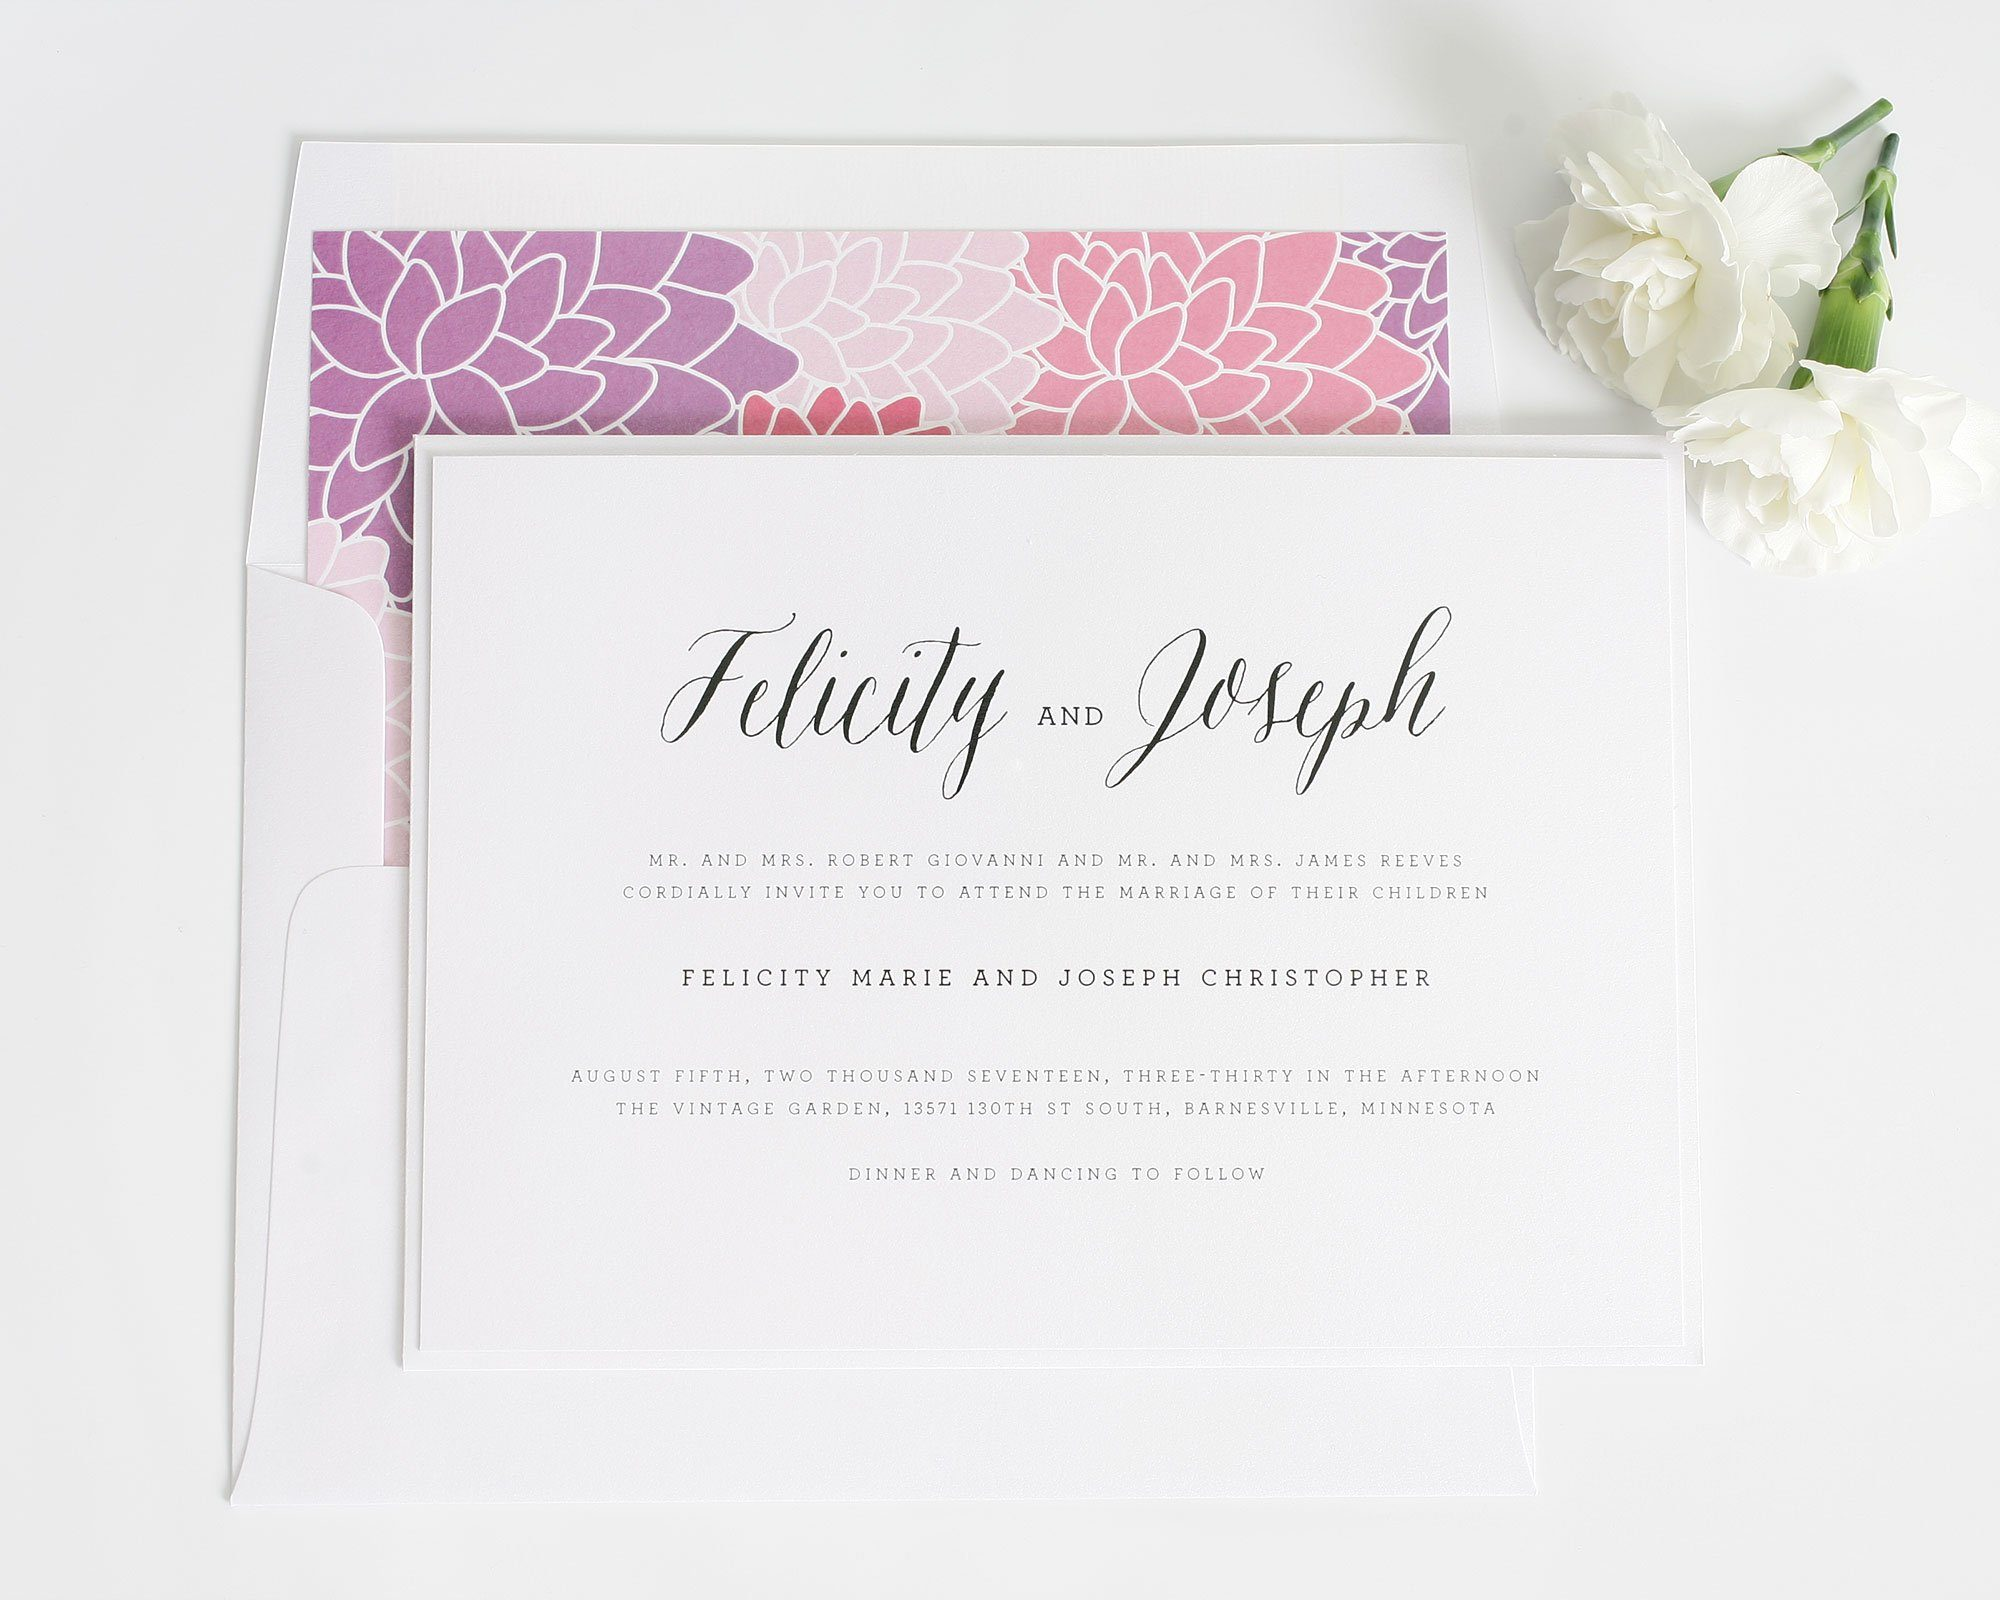 Rustic Romance wedding invitation with floral